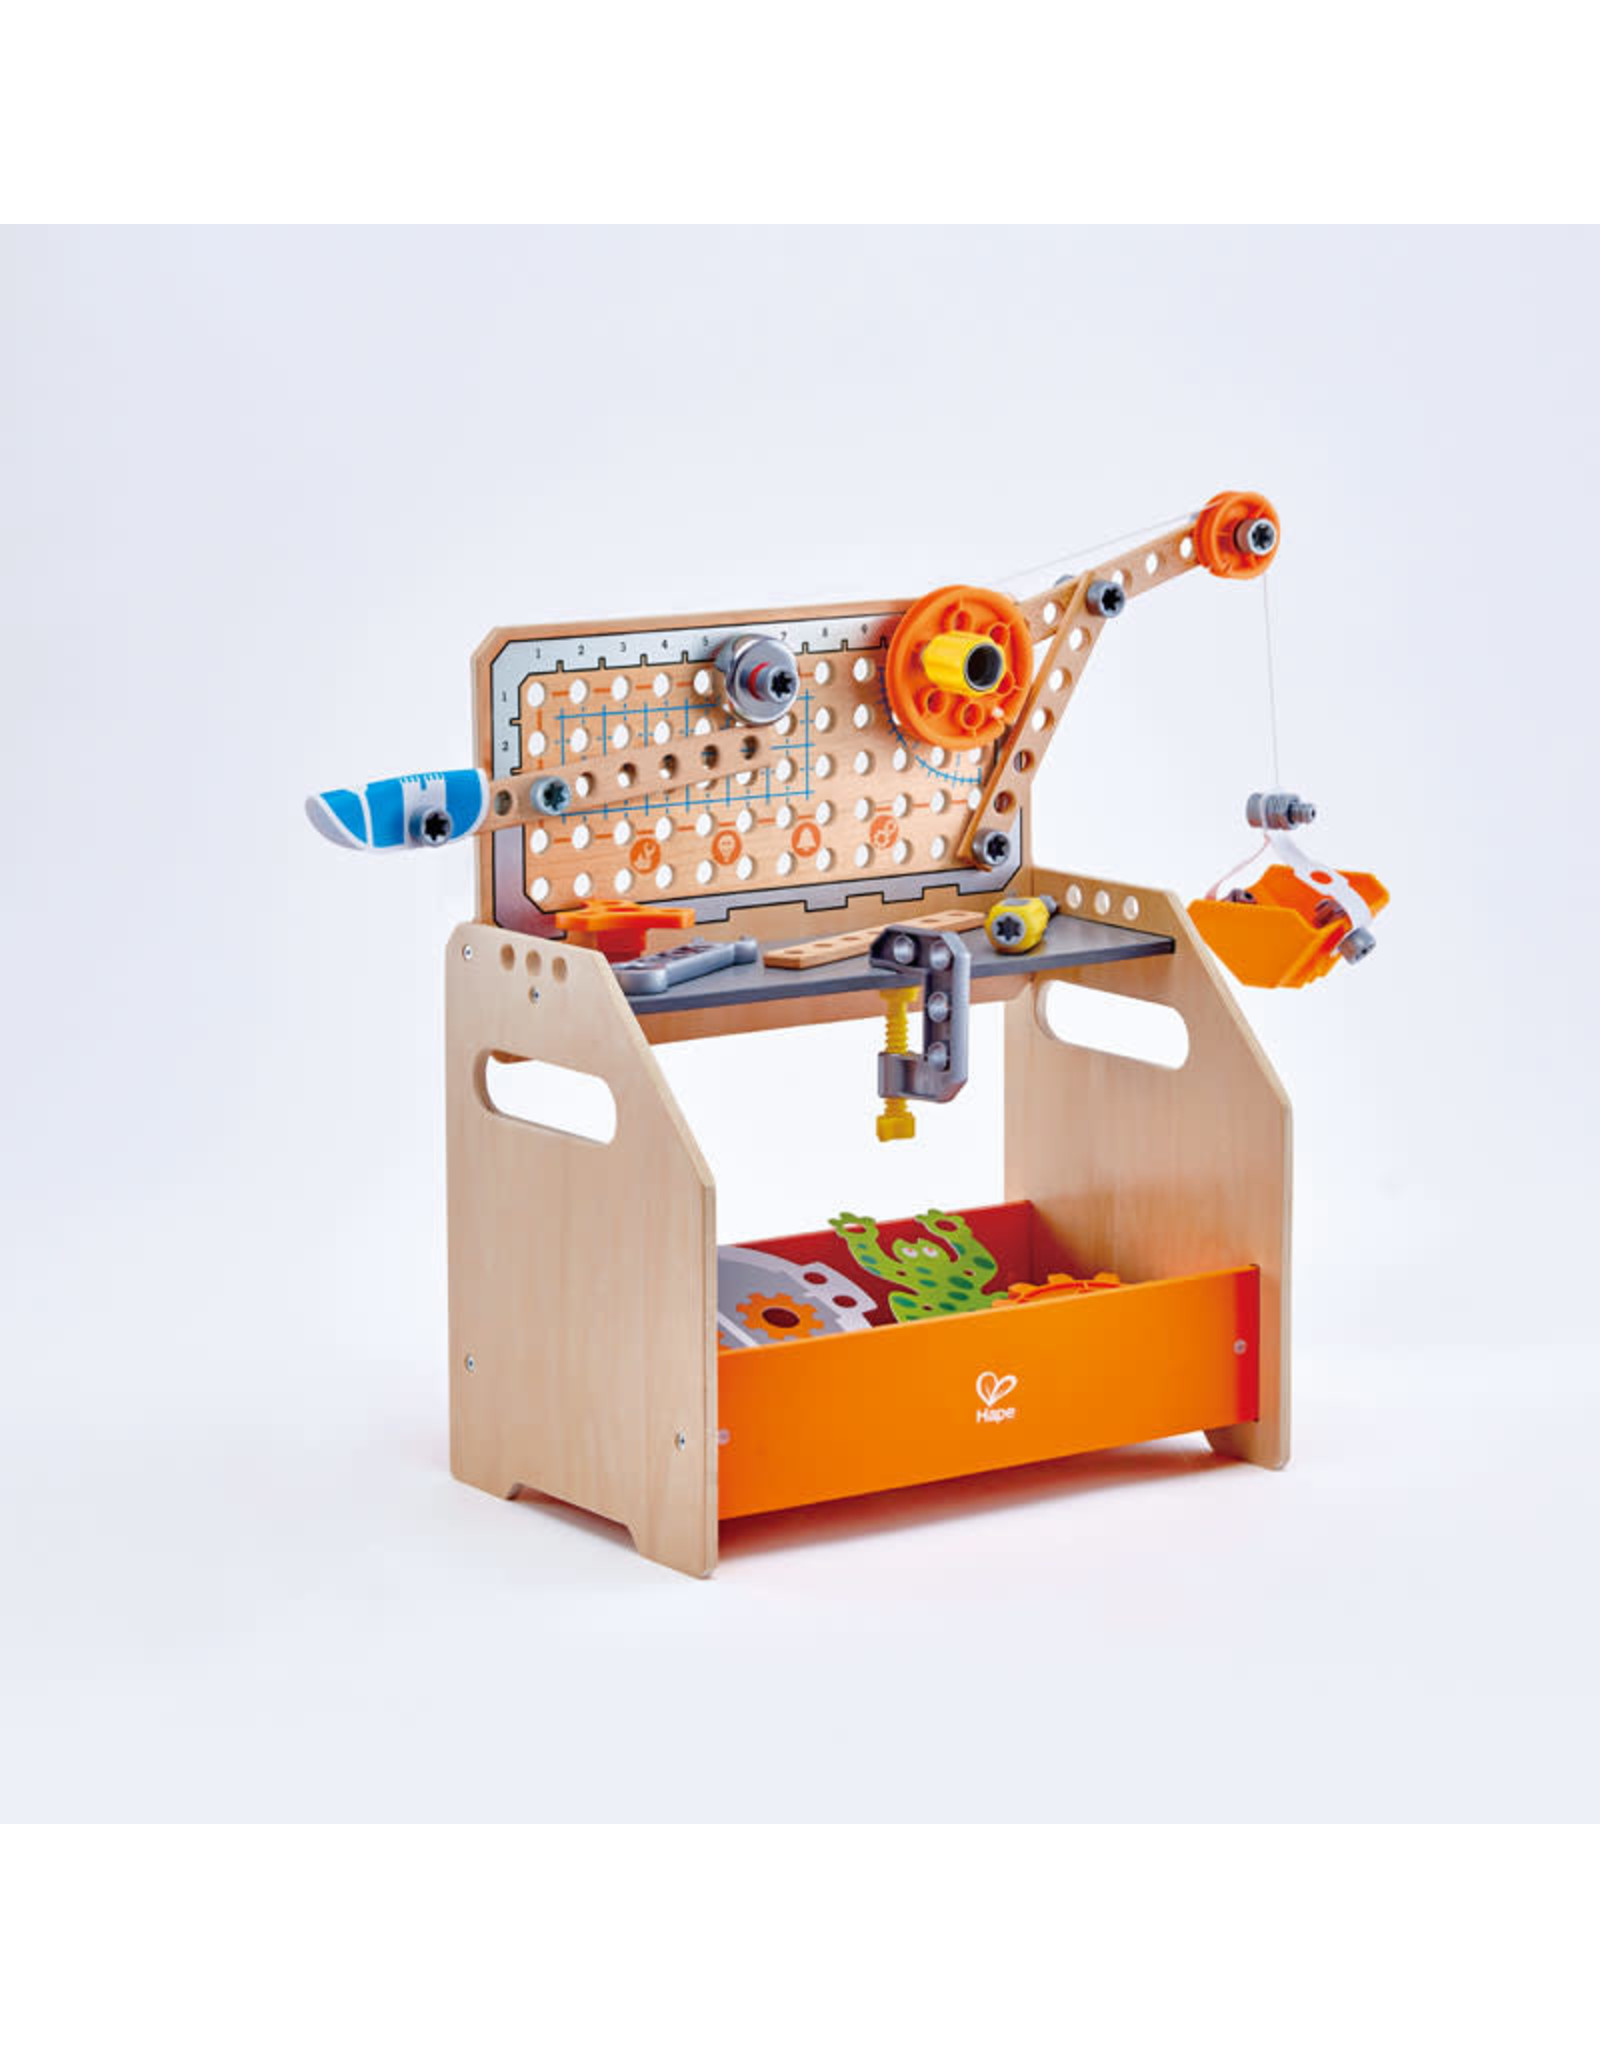 Hape Junior Inventor, Discovery Scientific Workbench